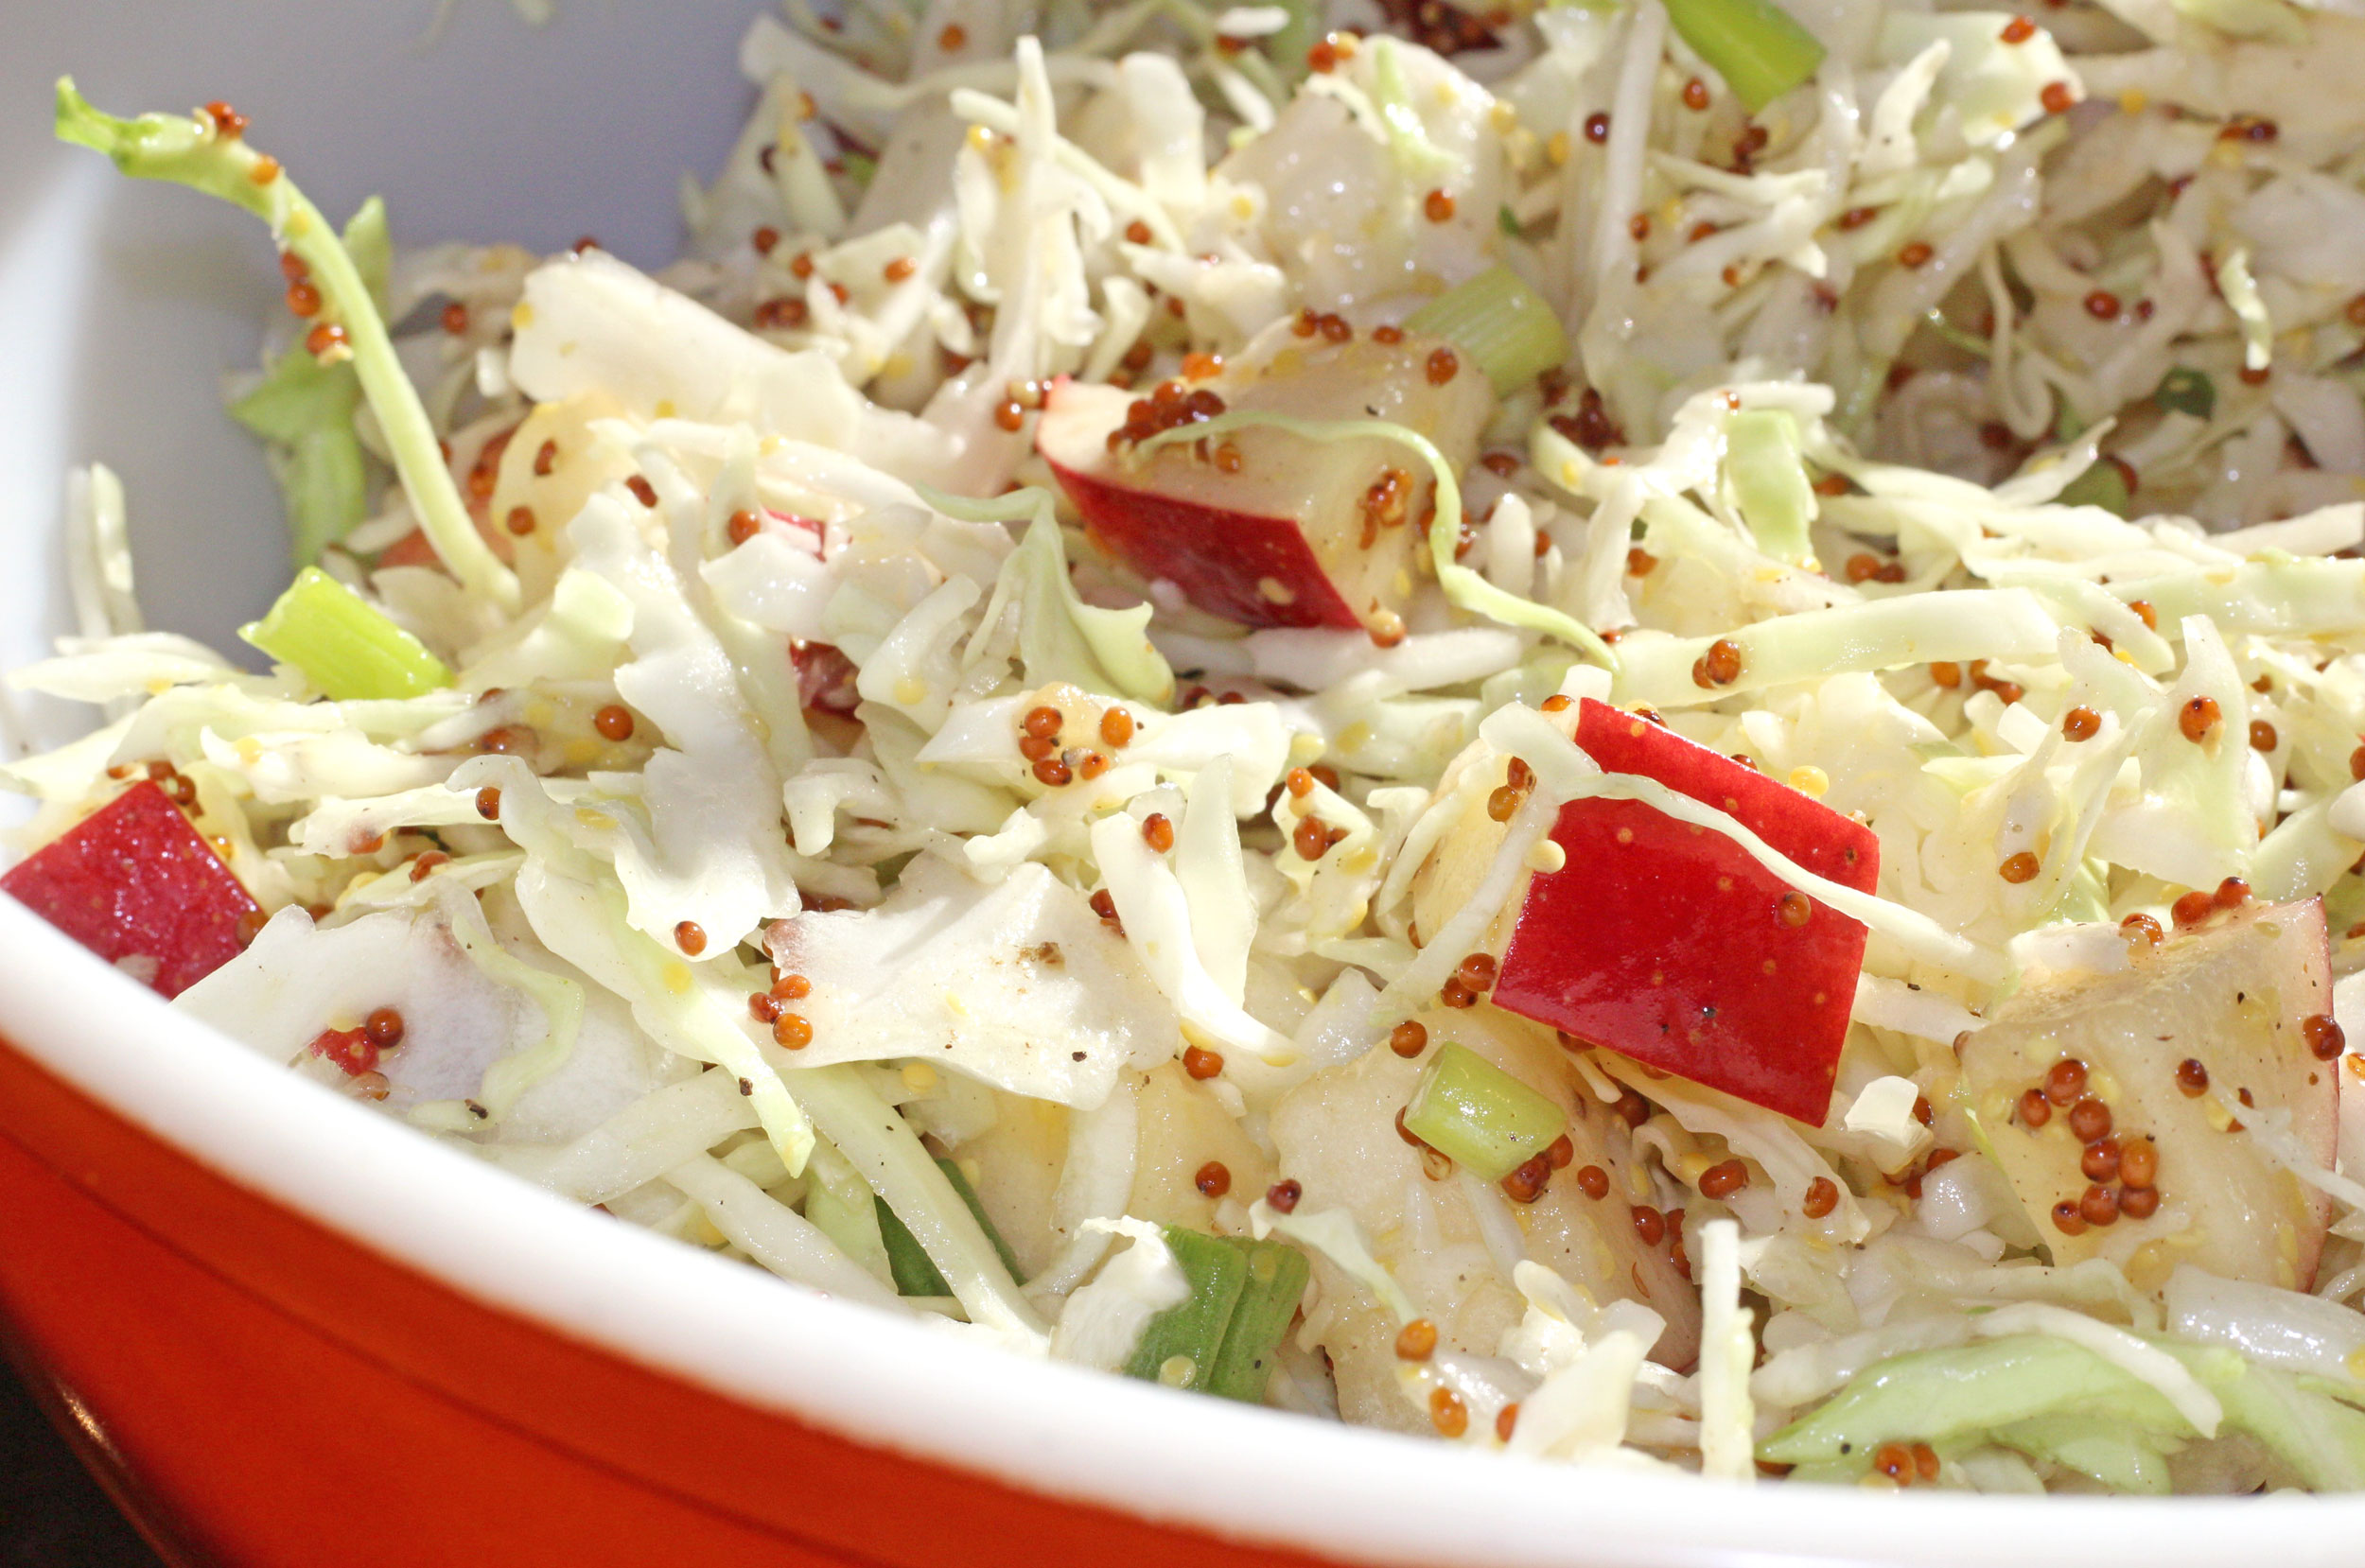 Apple-Cabbage Slaw with crunchy cabbage, crisp apples and green onions tossed with a zesty mustard dressing, this colorful slaw makes a great side dish for any barbecue this summer. | TheMountainKitchen.com